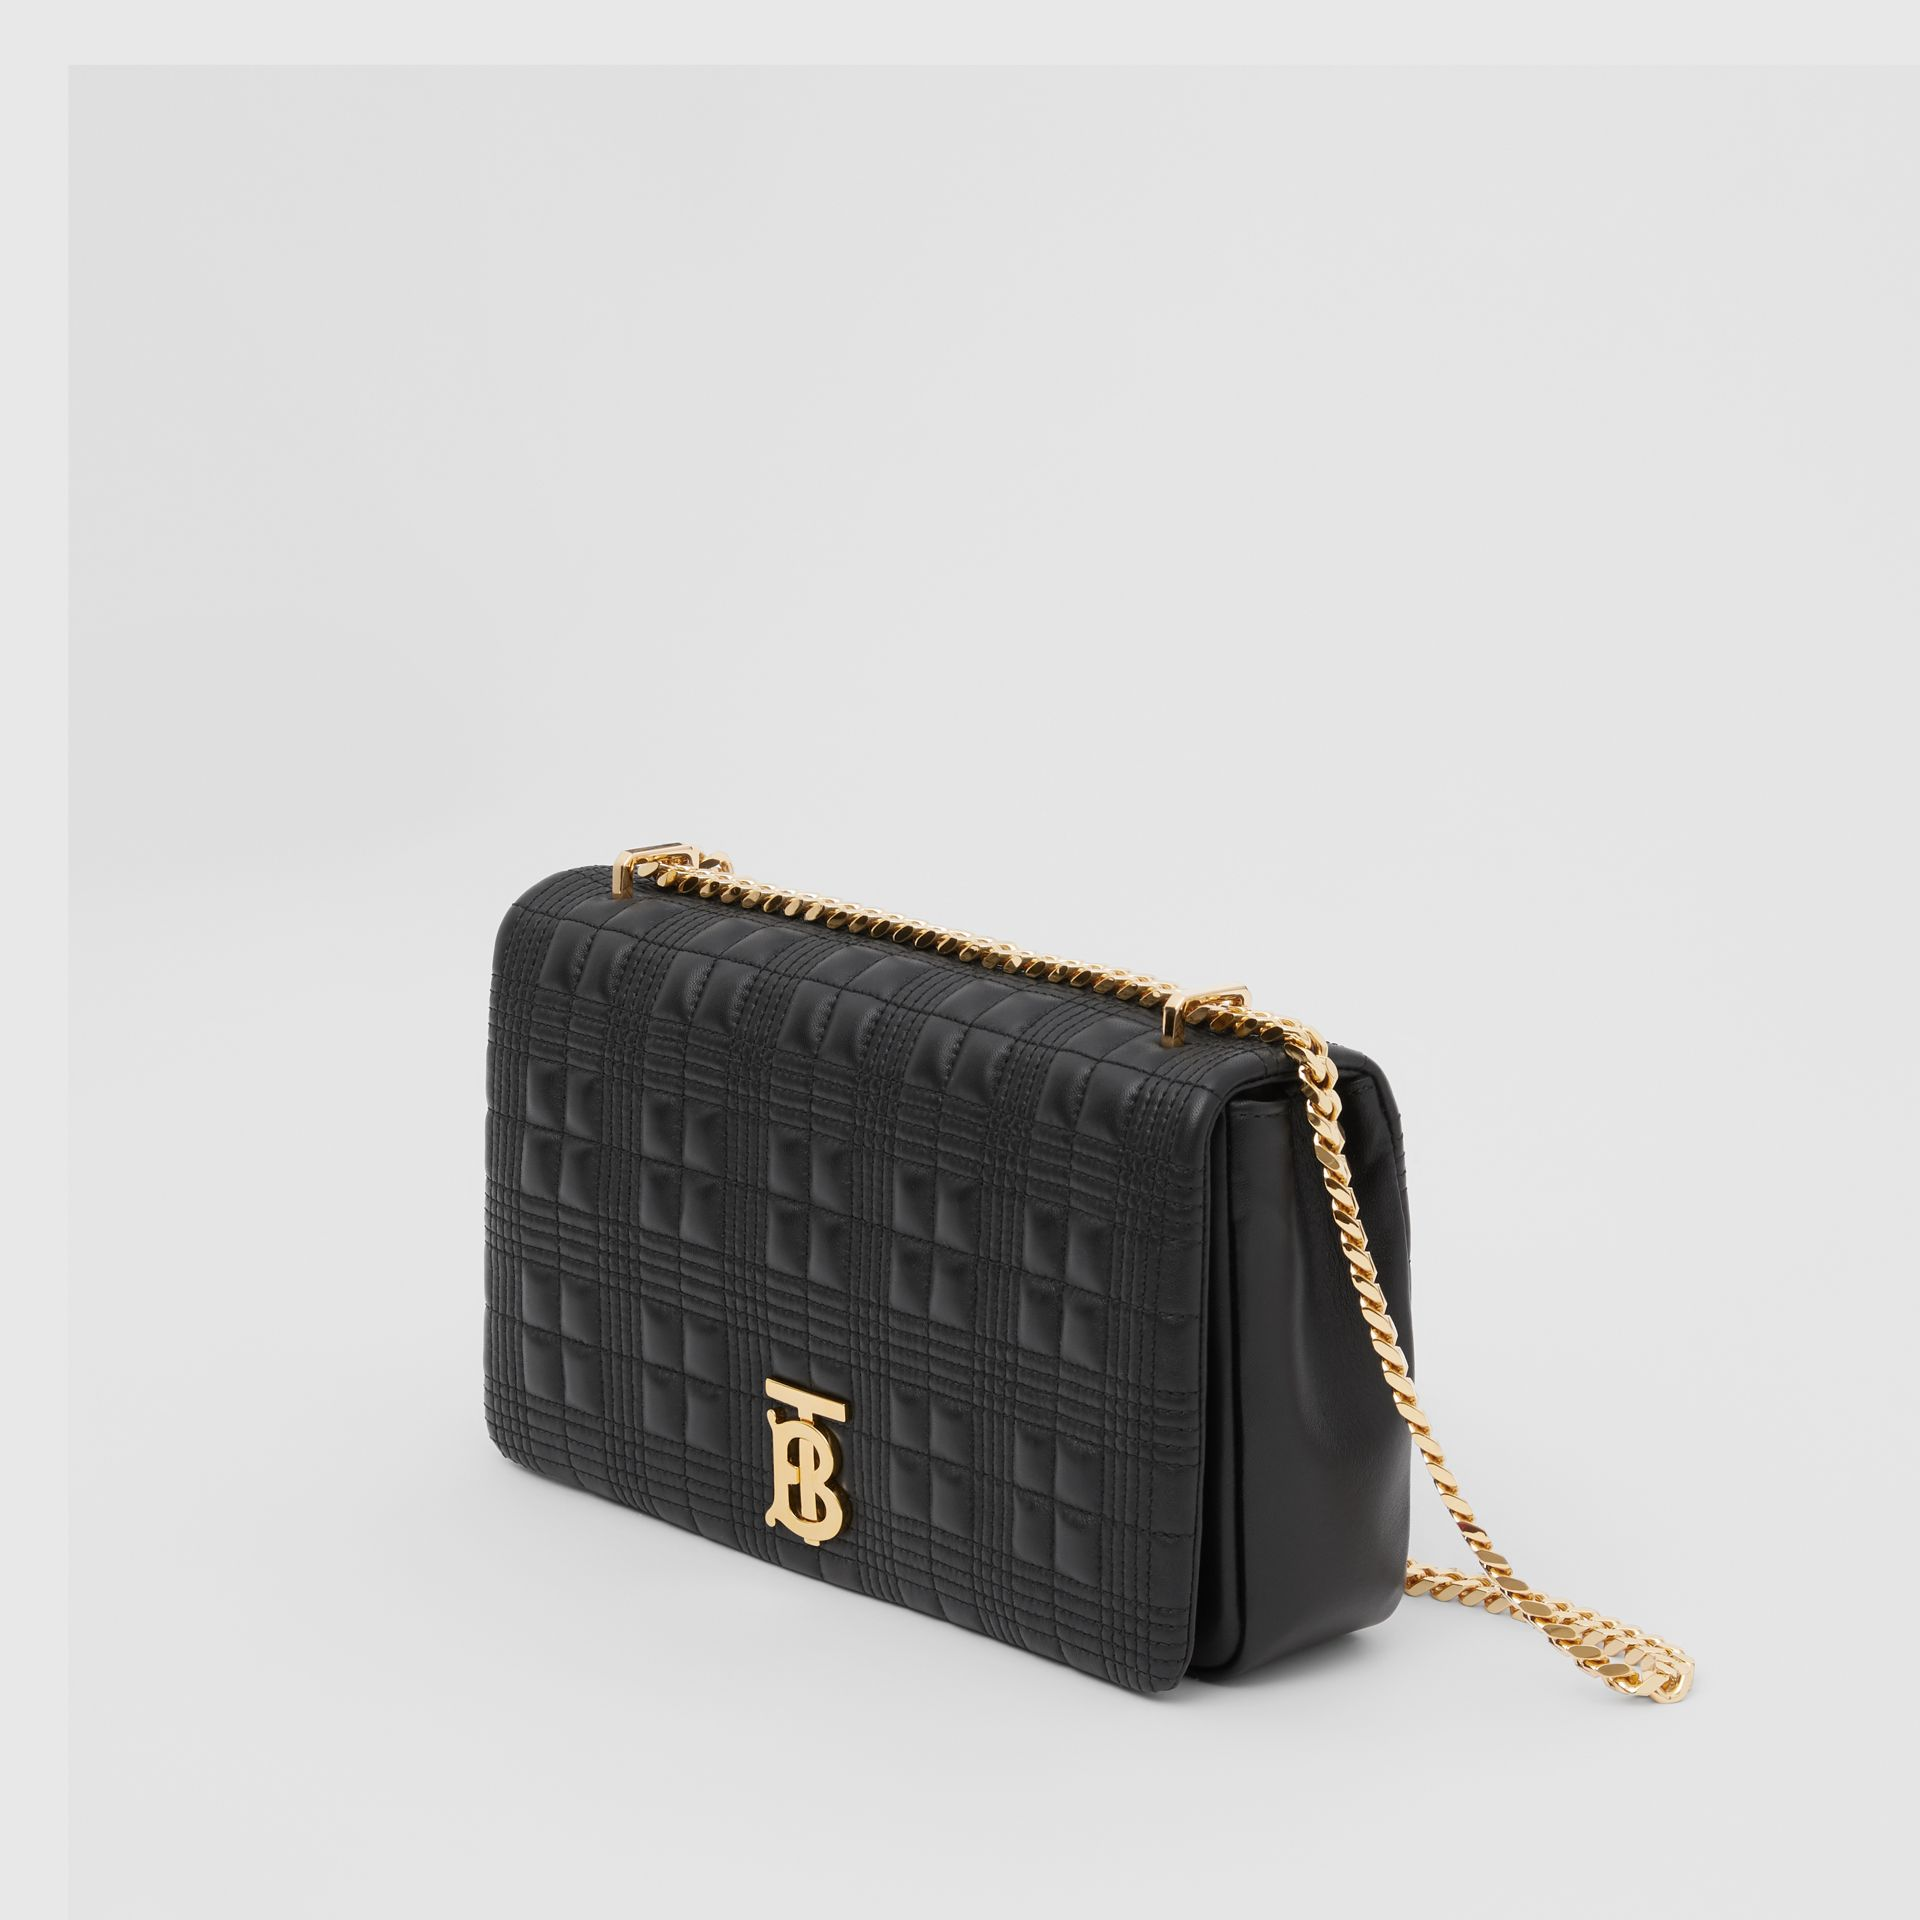 Medium Quilted Lambskin Lola Bag in Black - Women | Burberry United States - gallery image 2